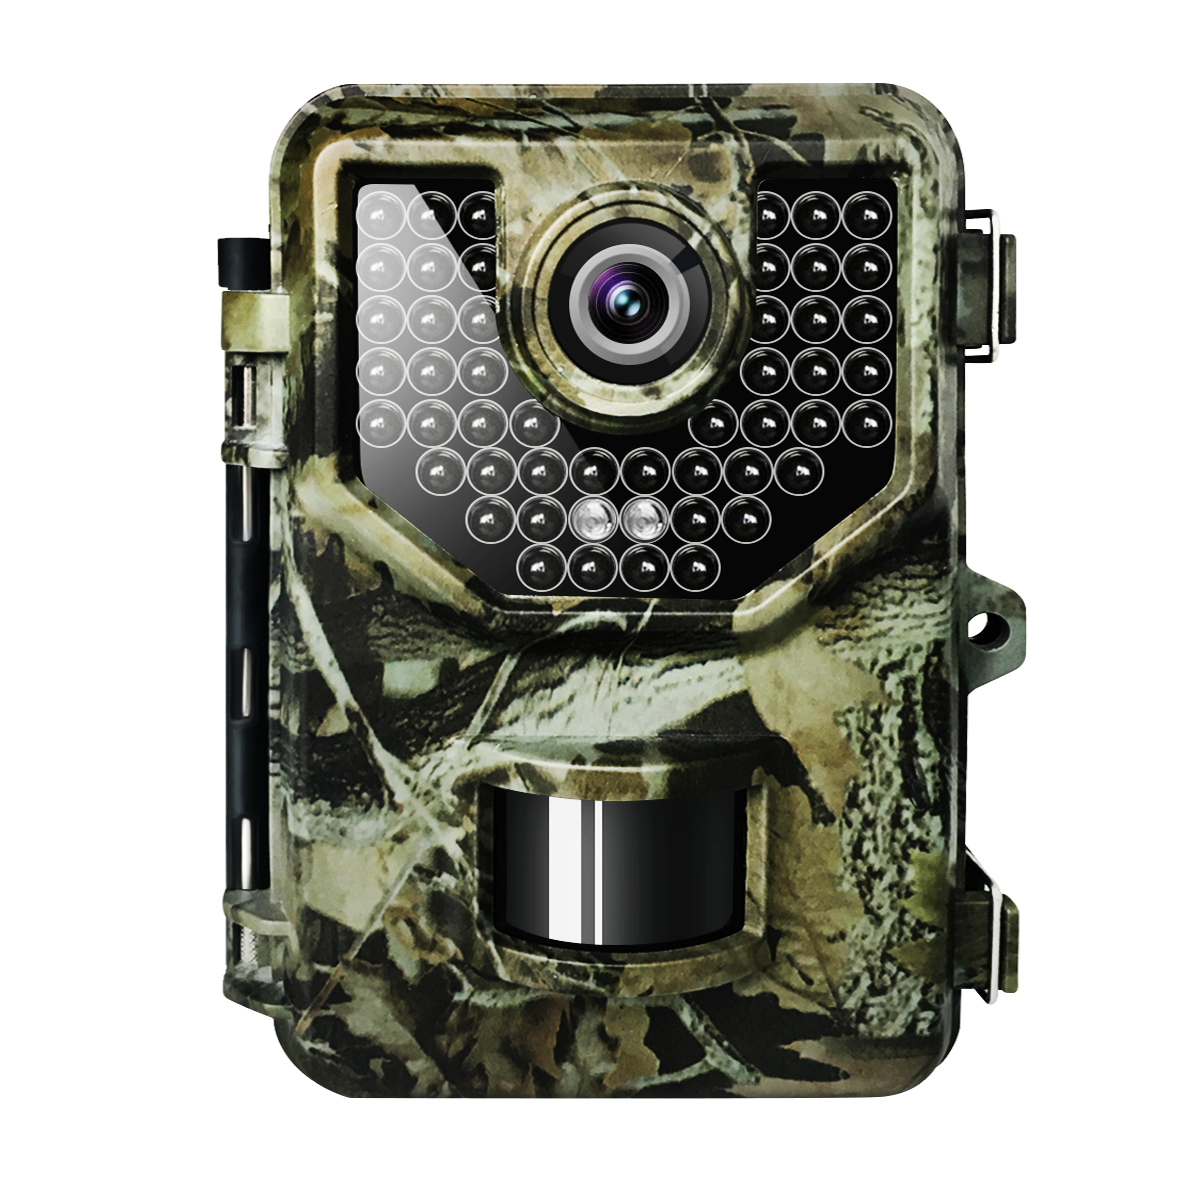 KALOAD E2 16MP 1080P Wildlife 120 Wide Angle Trail Surveillance Night Vision Hunting Camera